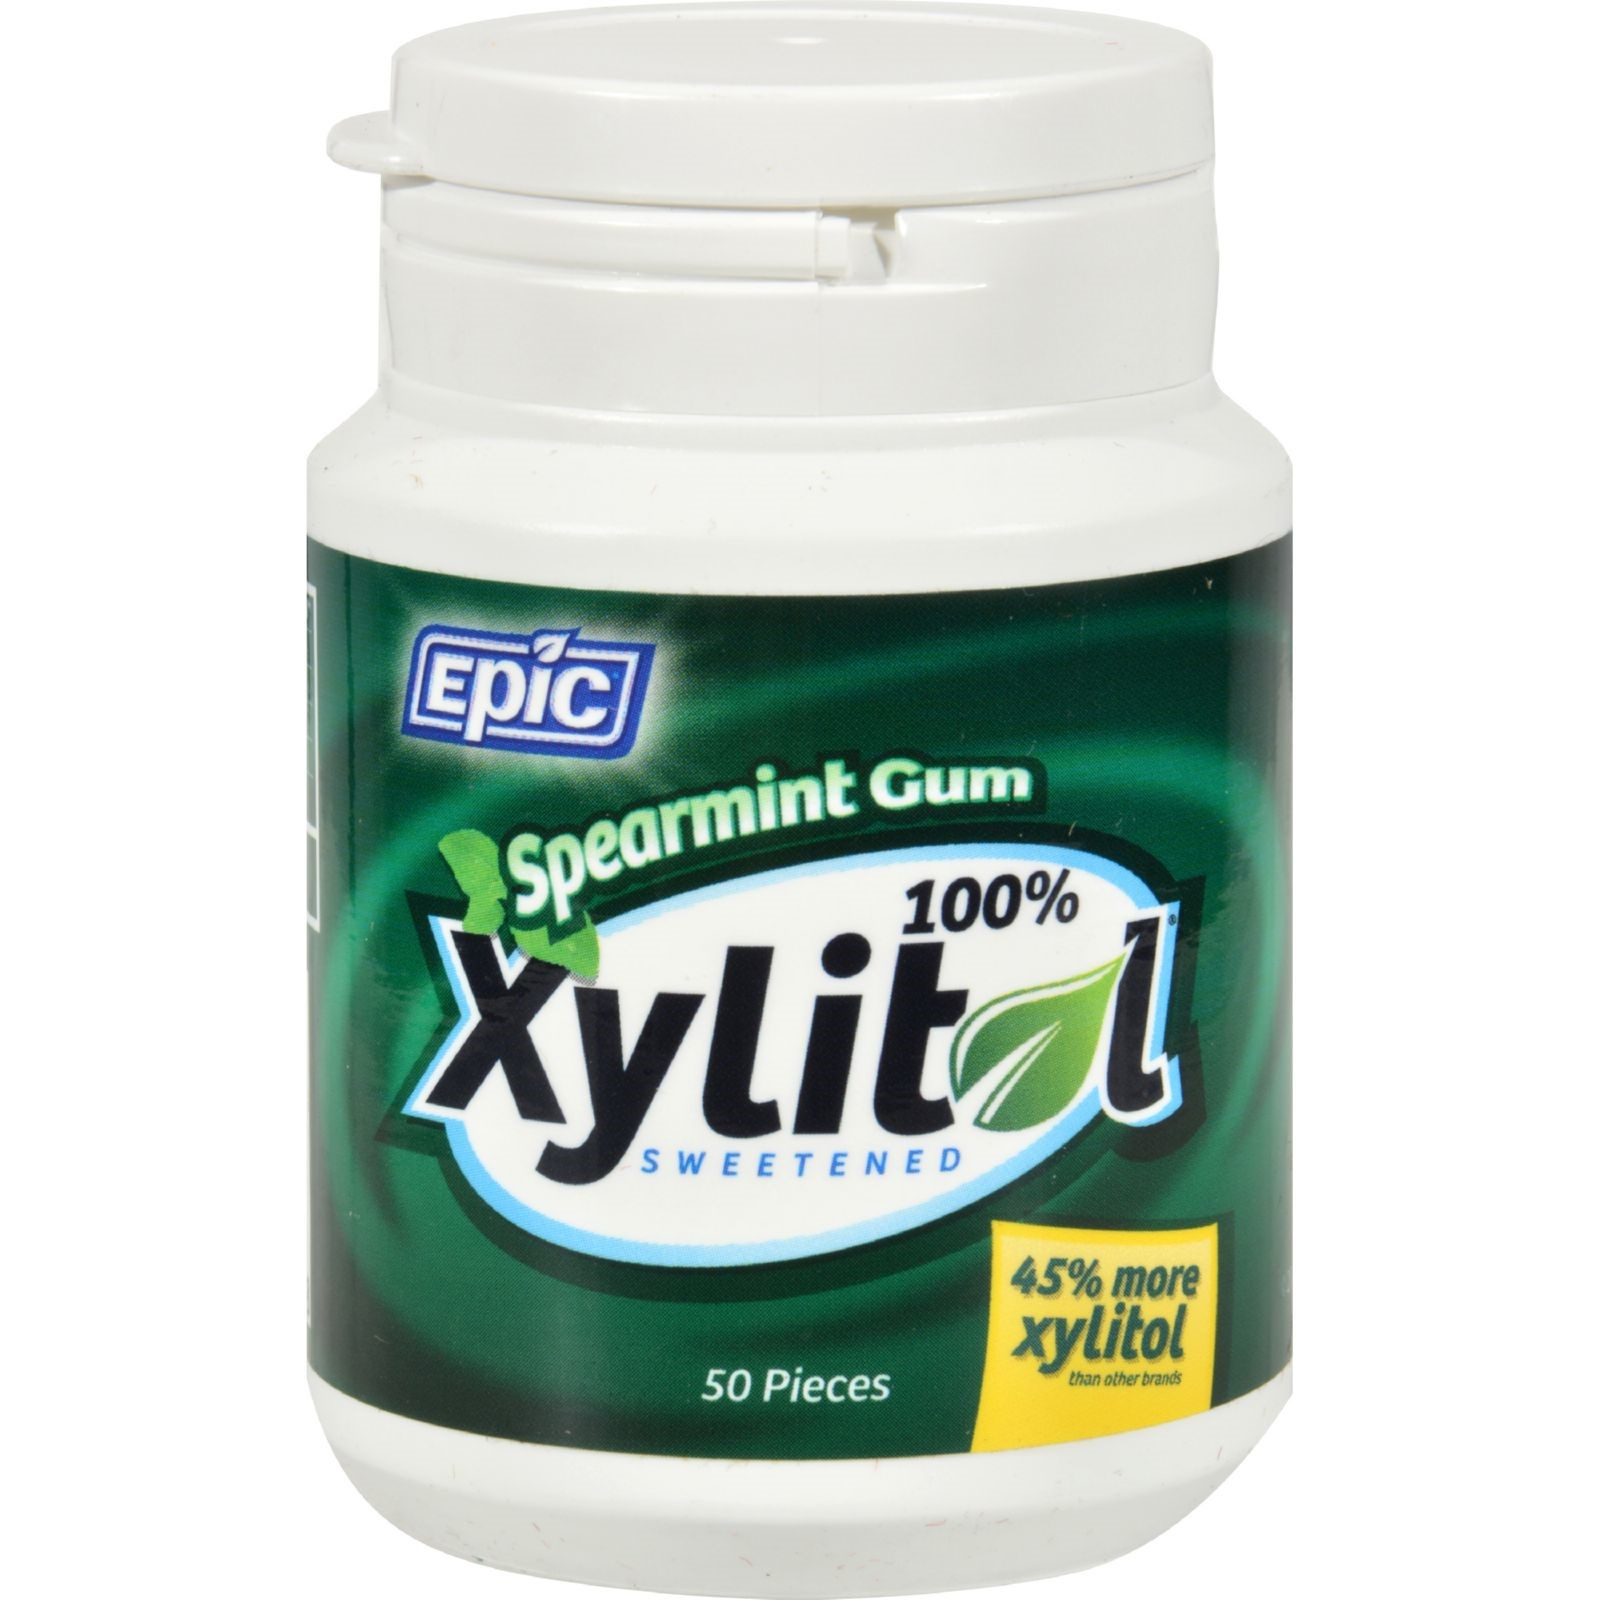 Epic Dental Spearmint Gum Xylitol Sweetened 50 Count by Epic Dental